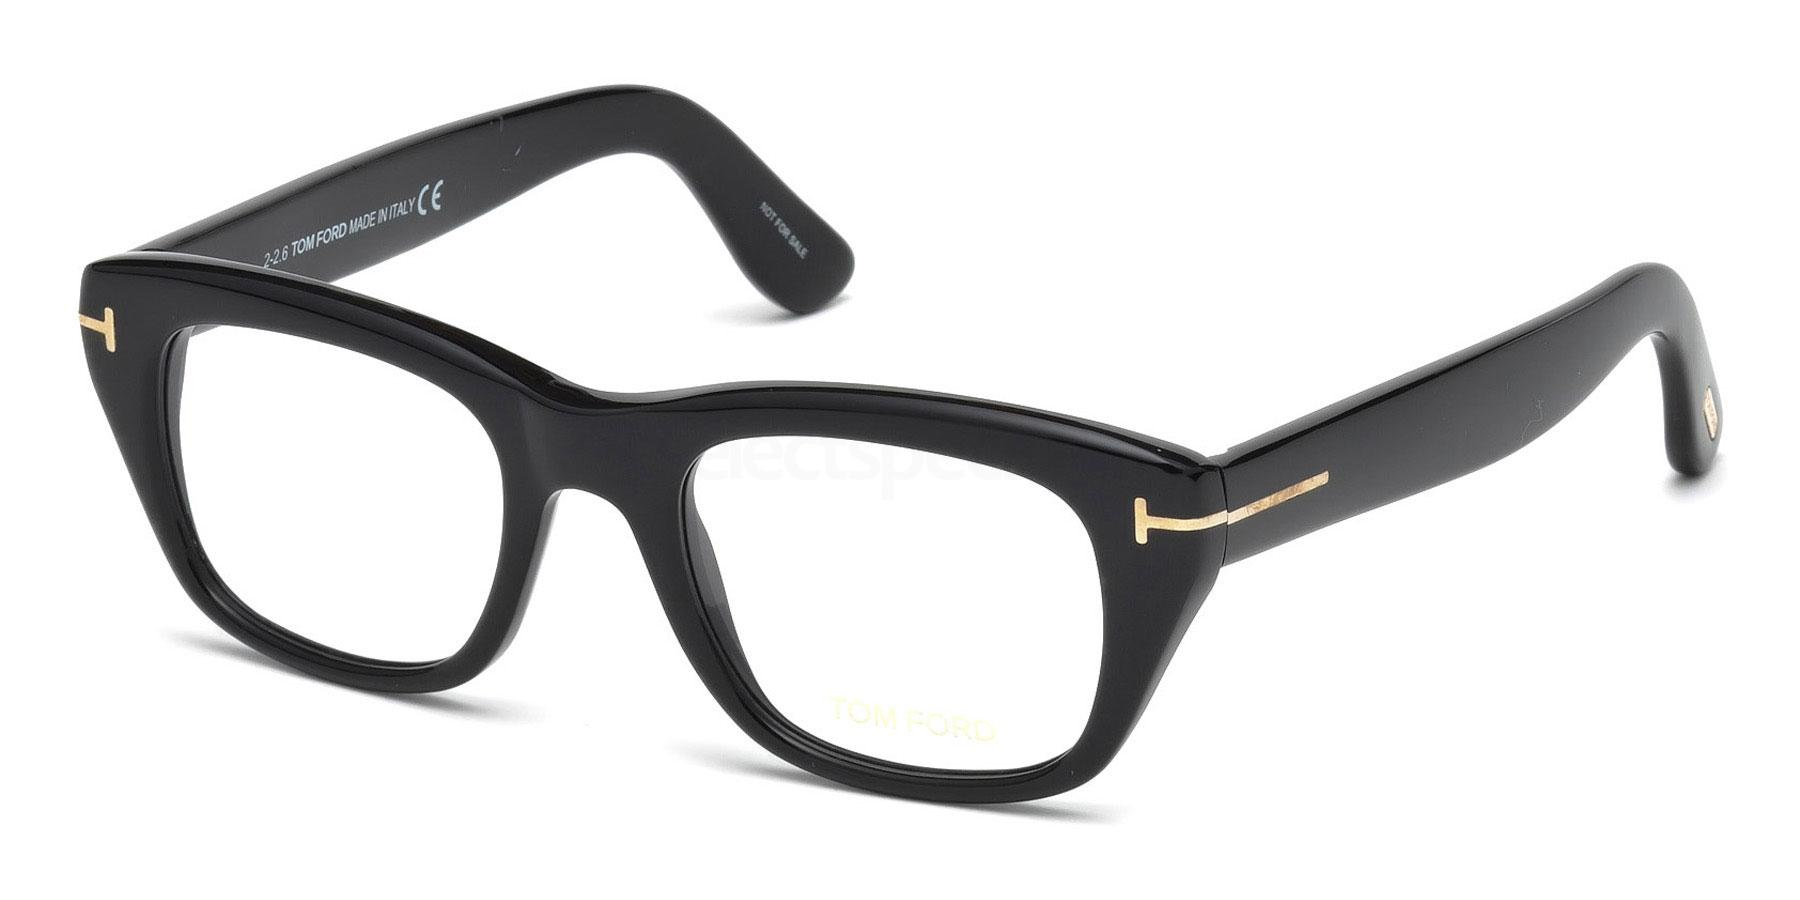 001 FT5472 Glasses, Tom Ford